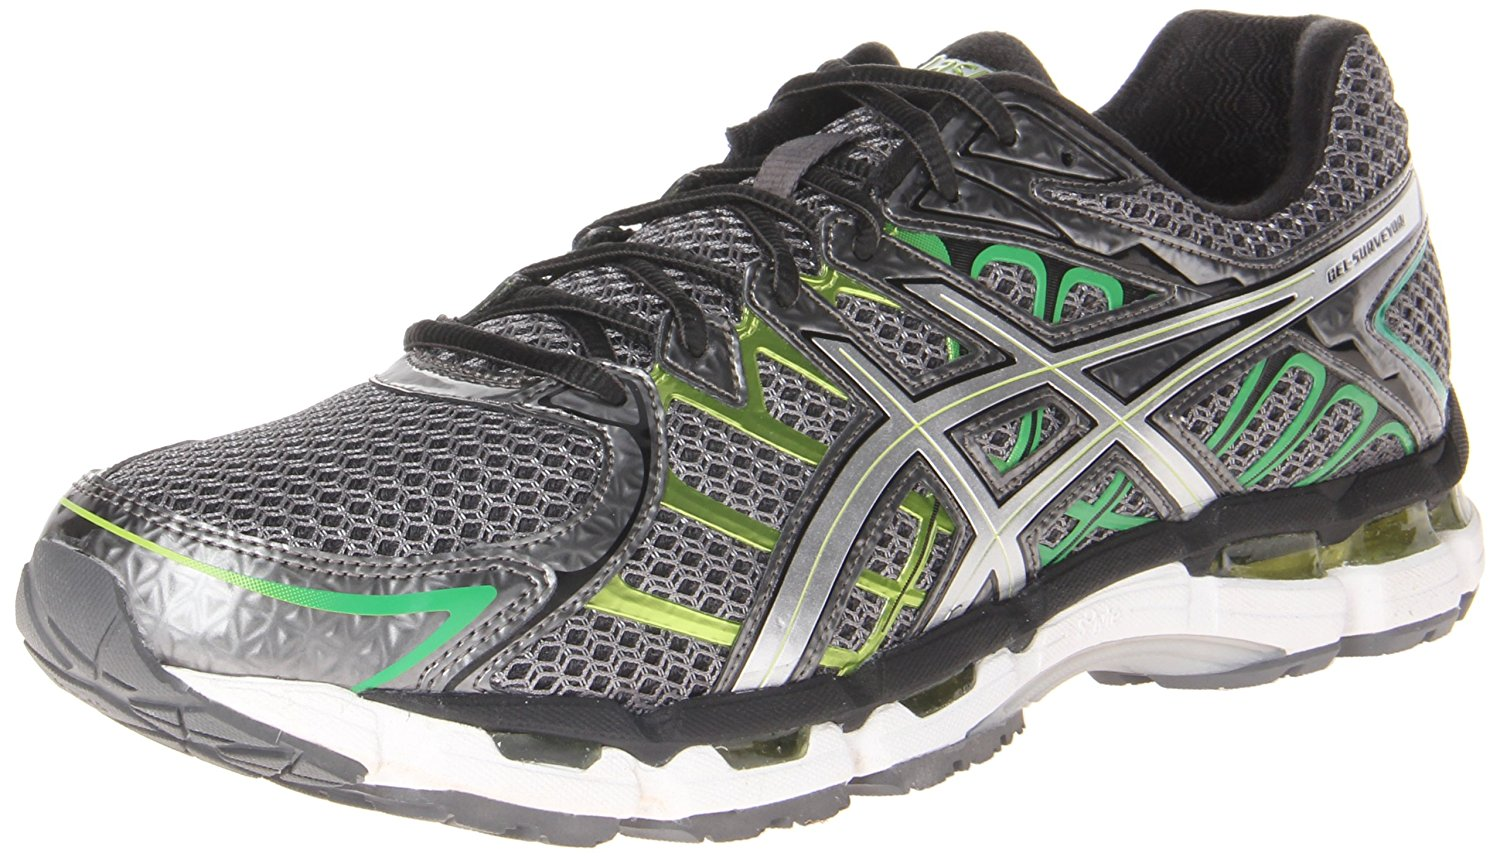 3023257602cb0 Asics Mens Running Shoes   Buy Discount Shoes from Asics and ...